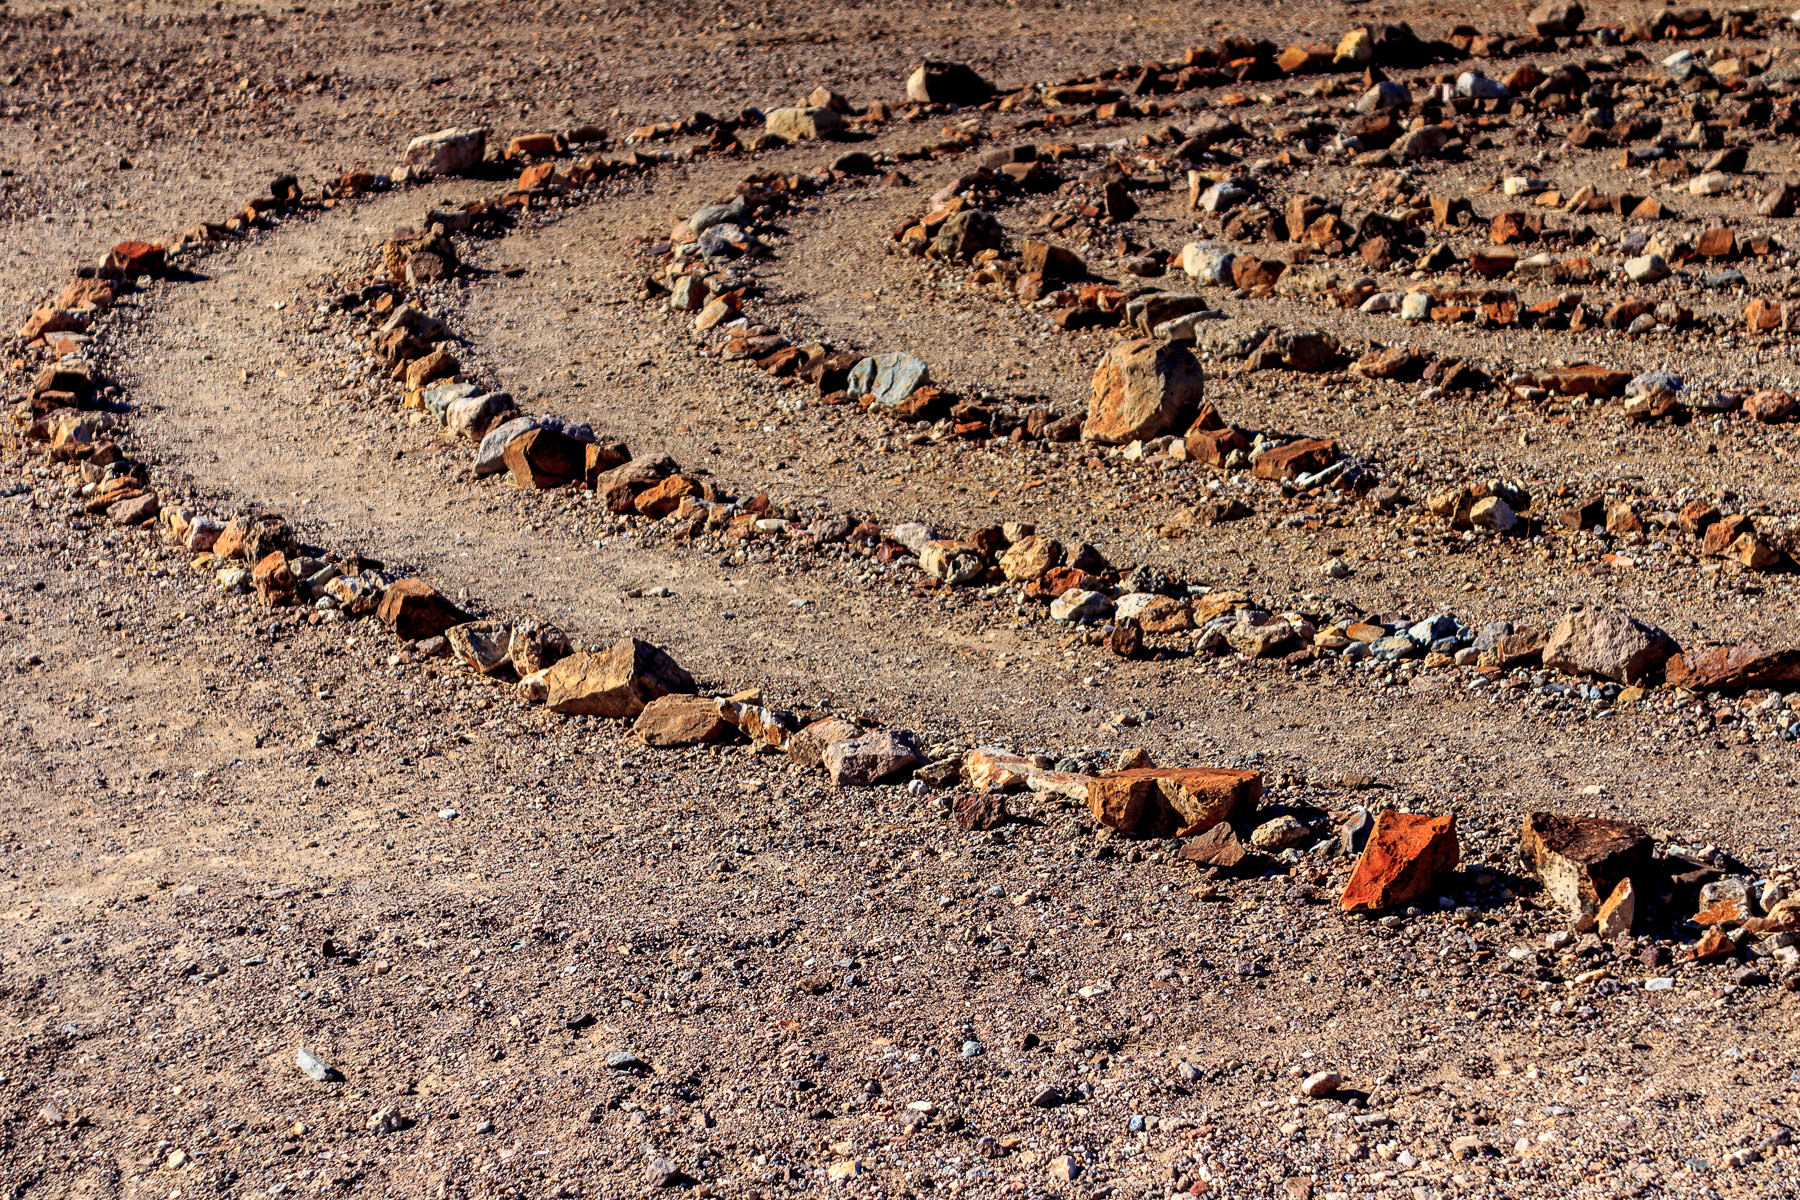 Rings of rocks form a large-scale artwork at the Goldwell Open Air Museum in the ghost town of Rhyolite, Nevada.